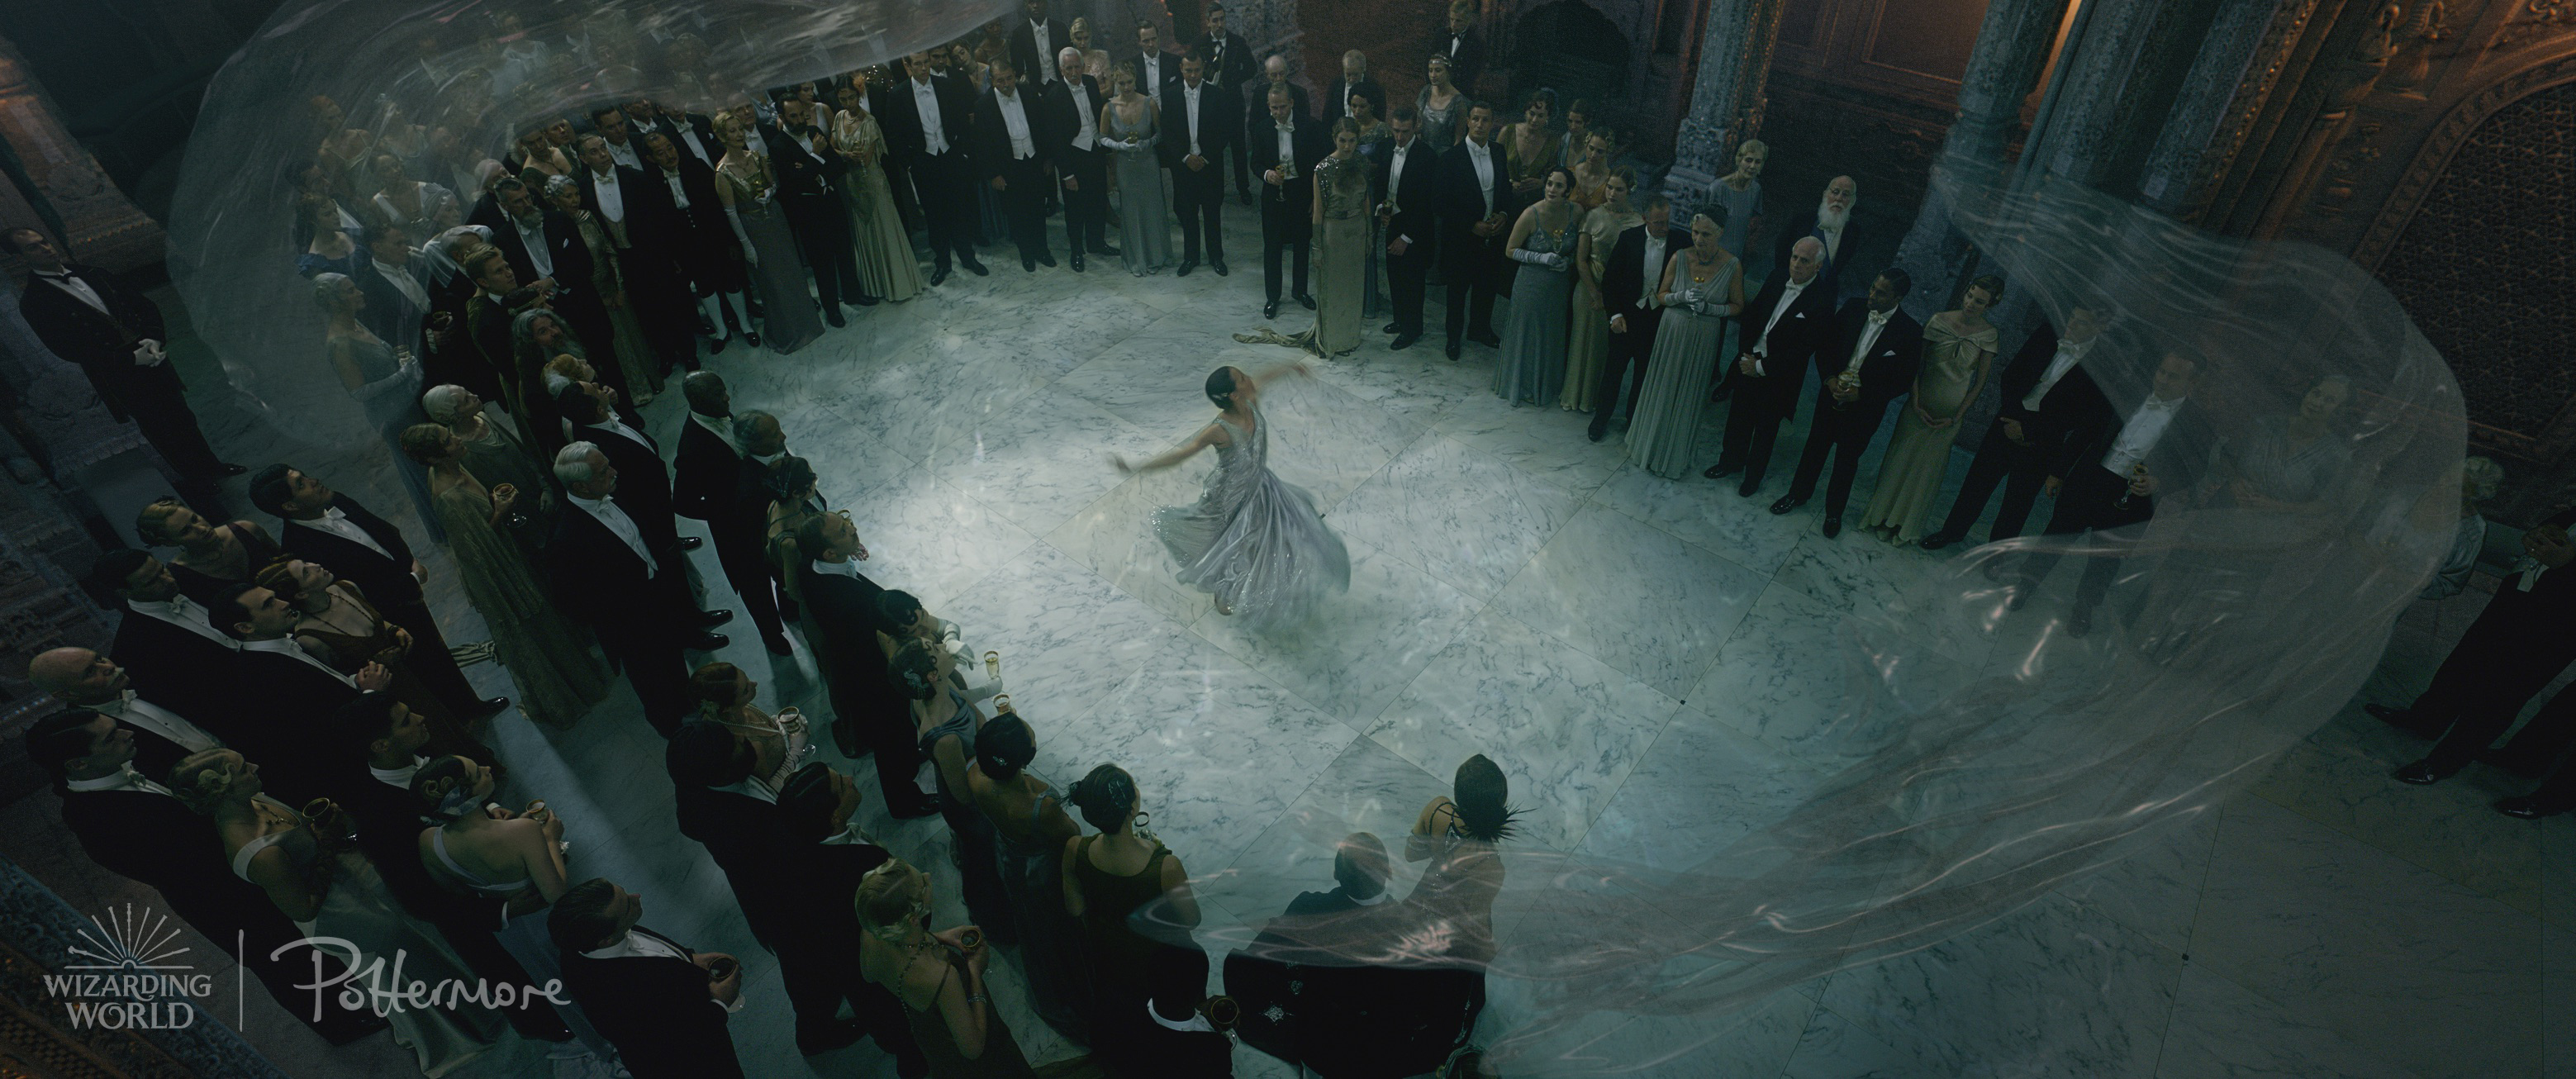 Leta Lestrange dancing in the trailer for Fantastic Beasts: Crimes of Grindelwald